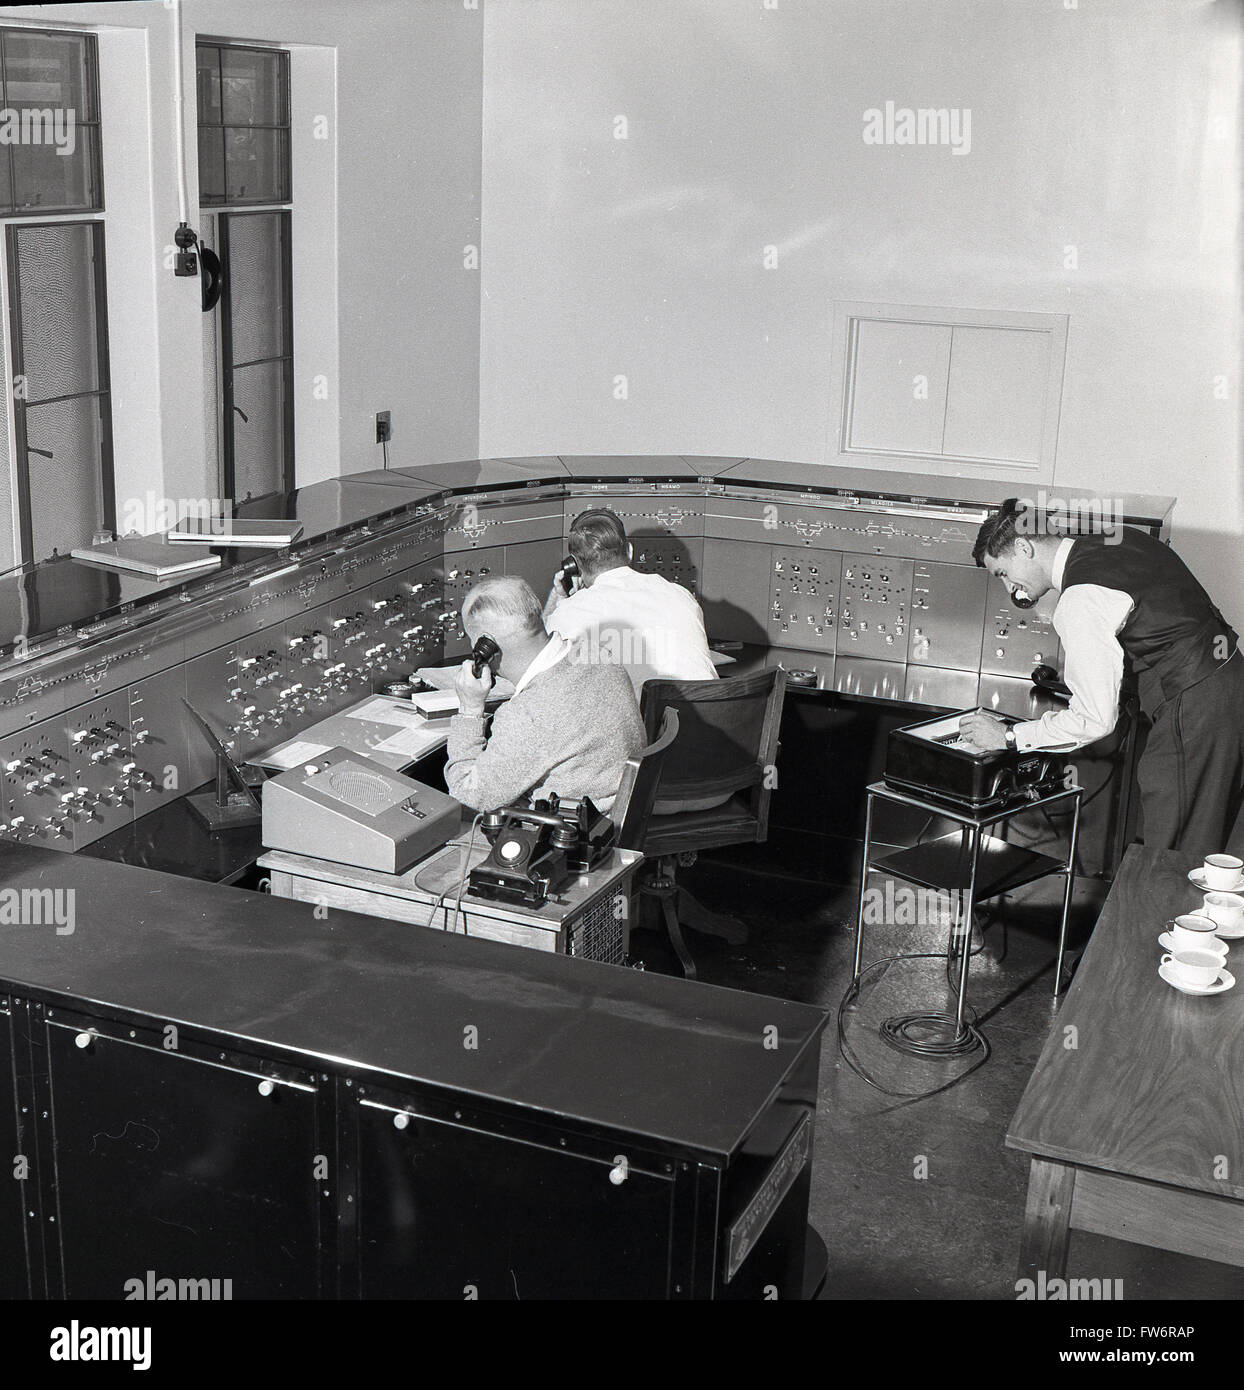 1950s historical, working in a control room at airport Jan Smuts, South Africa. - Stock Image